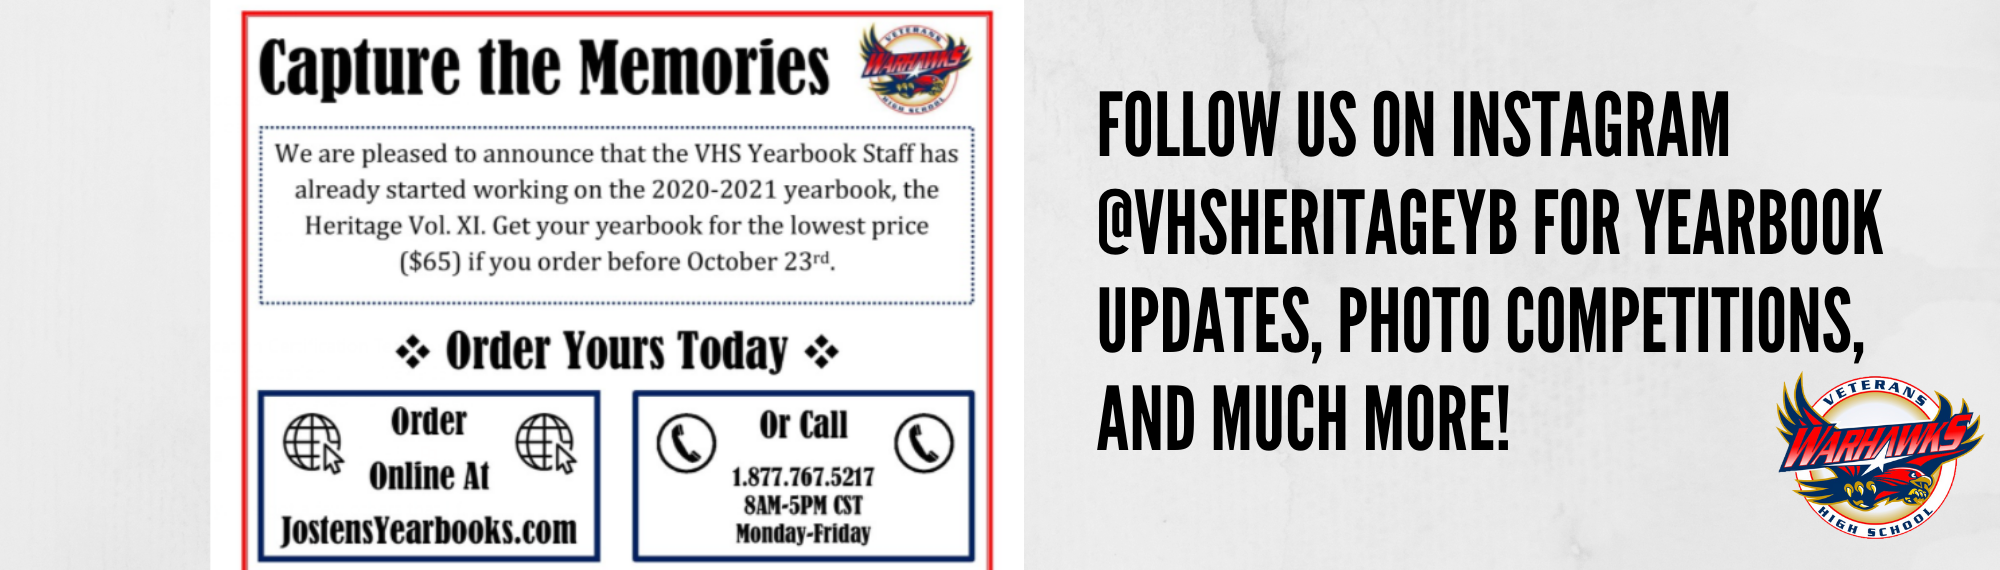 Order your yearbook today for $65 before Oct 23, 2020